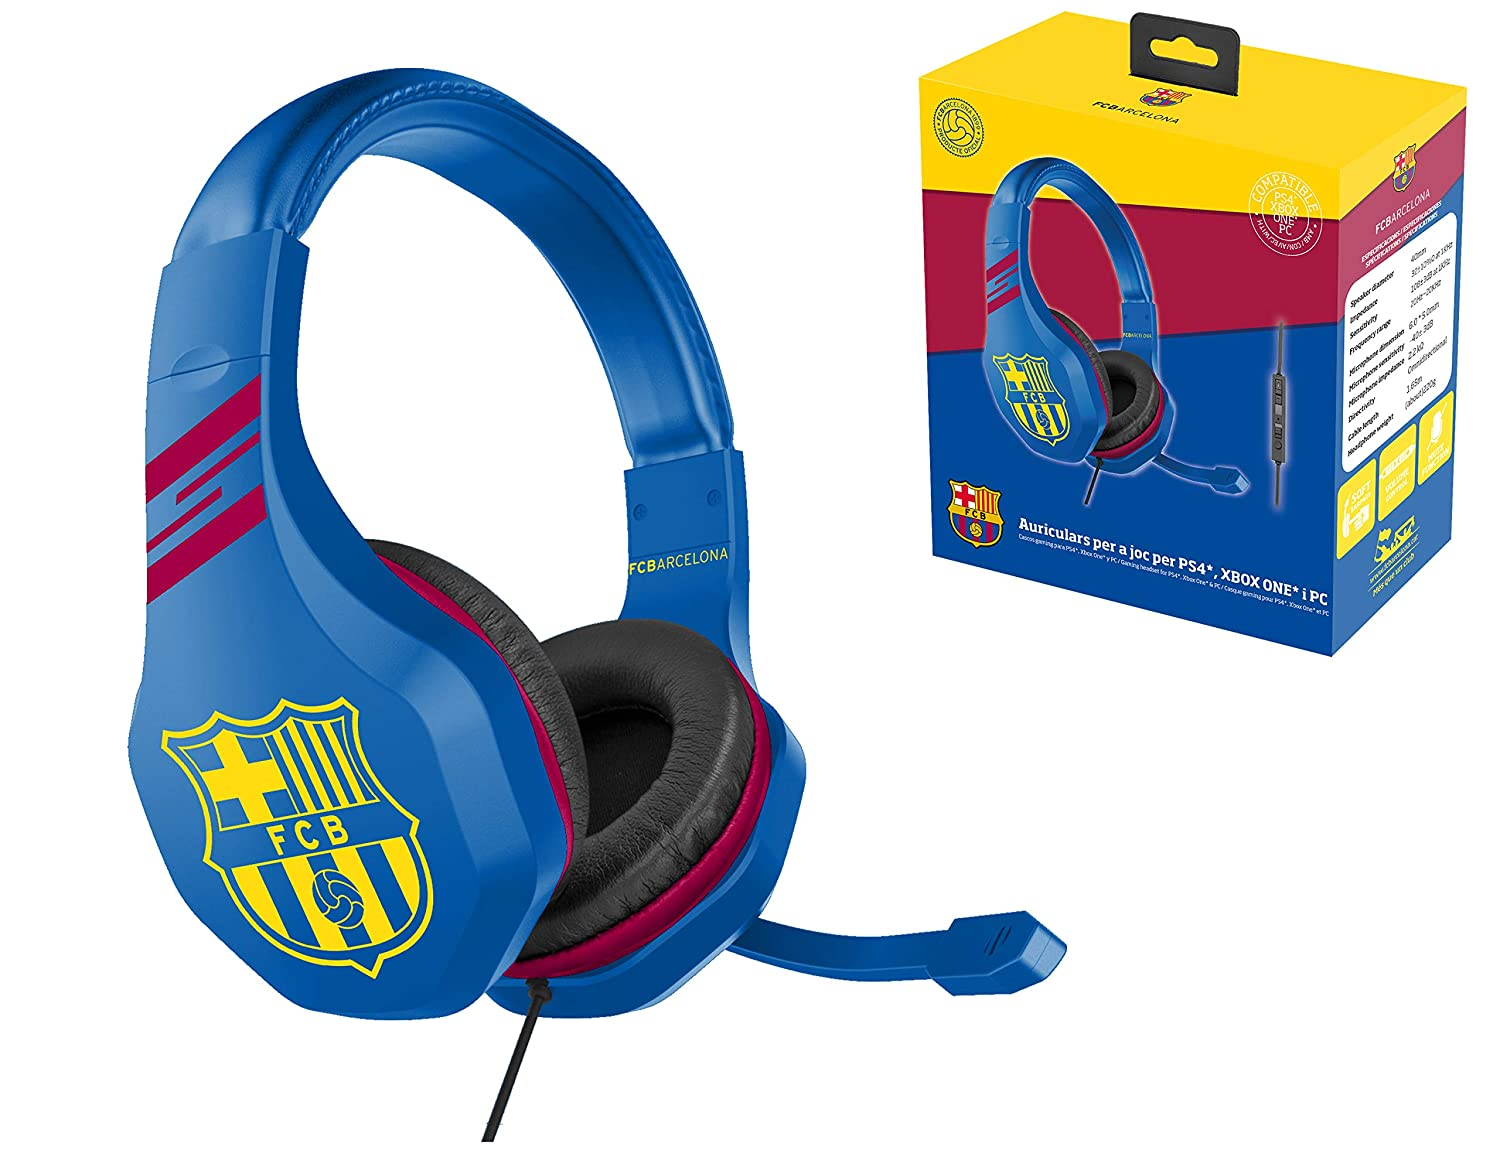 2fc022bee5b Gaming headset with microphone for Playstation 4 - PS4 Slim - PS4 Pro -  Xbox One - PC - Gamer accessory club FCB FC Barcelona: Amazon.co.uk: PC &  Video ...